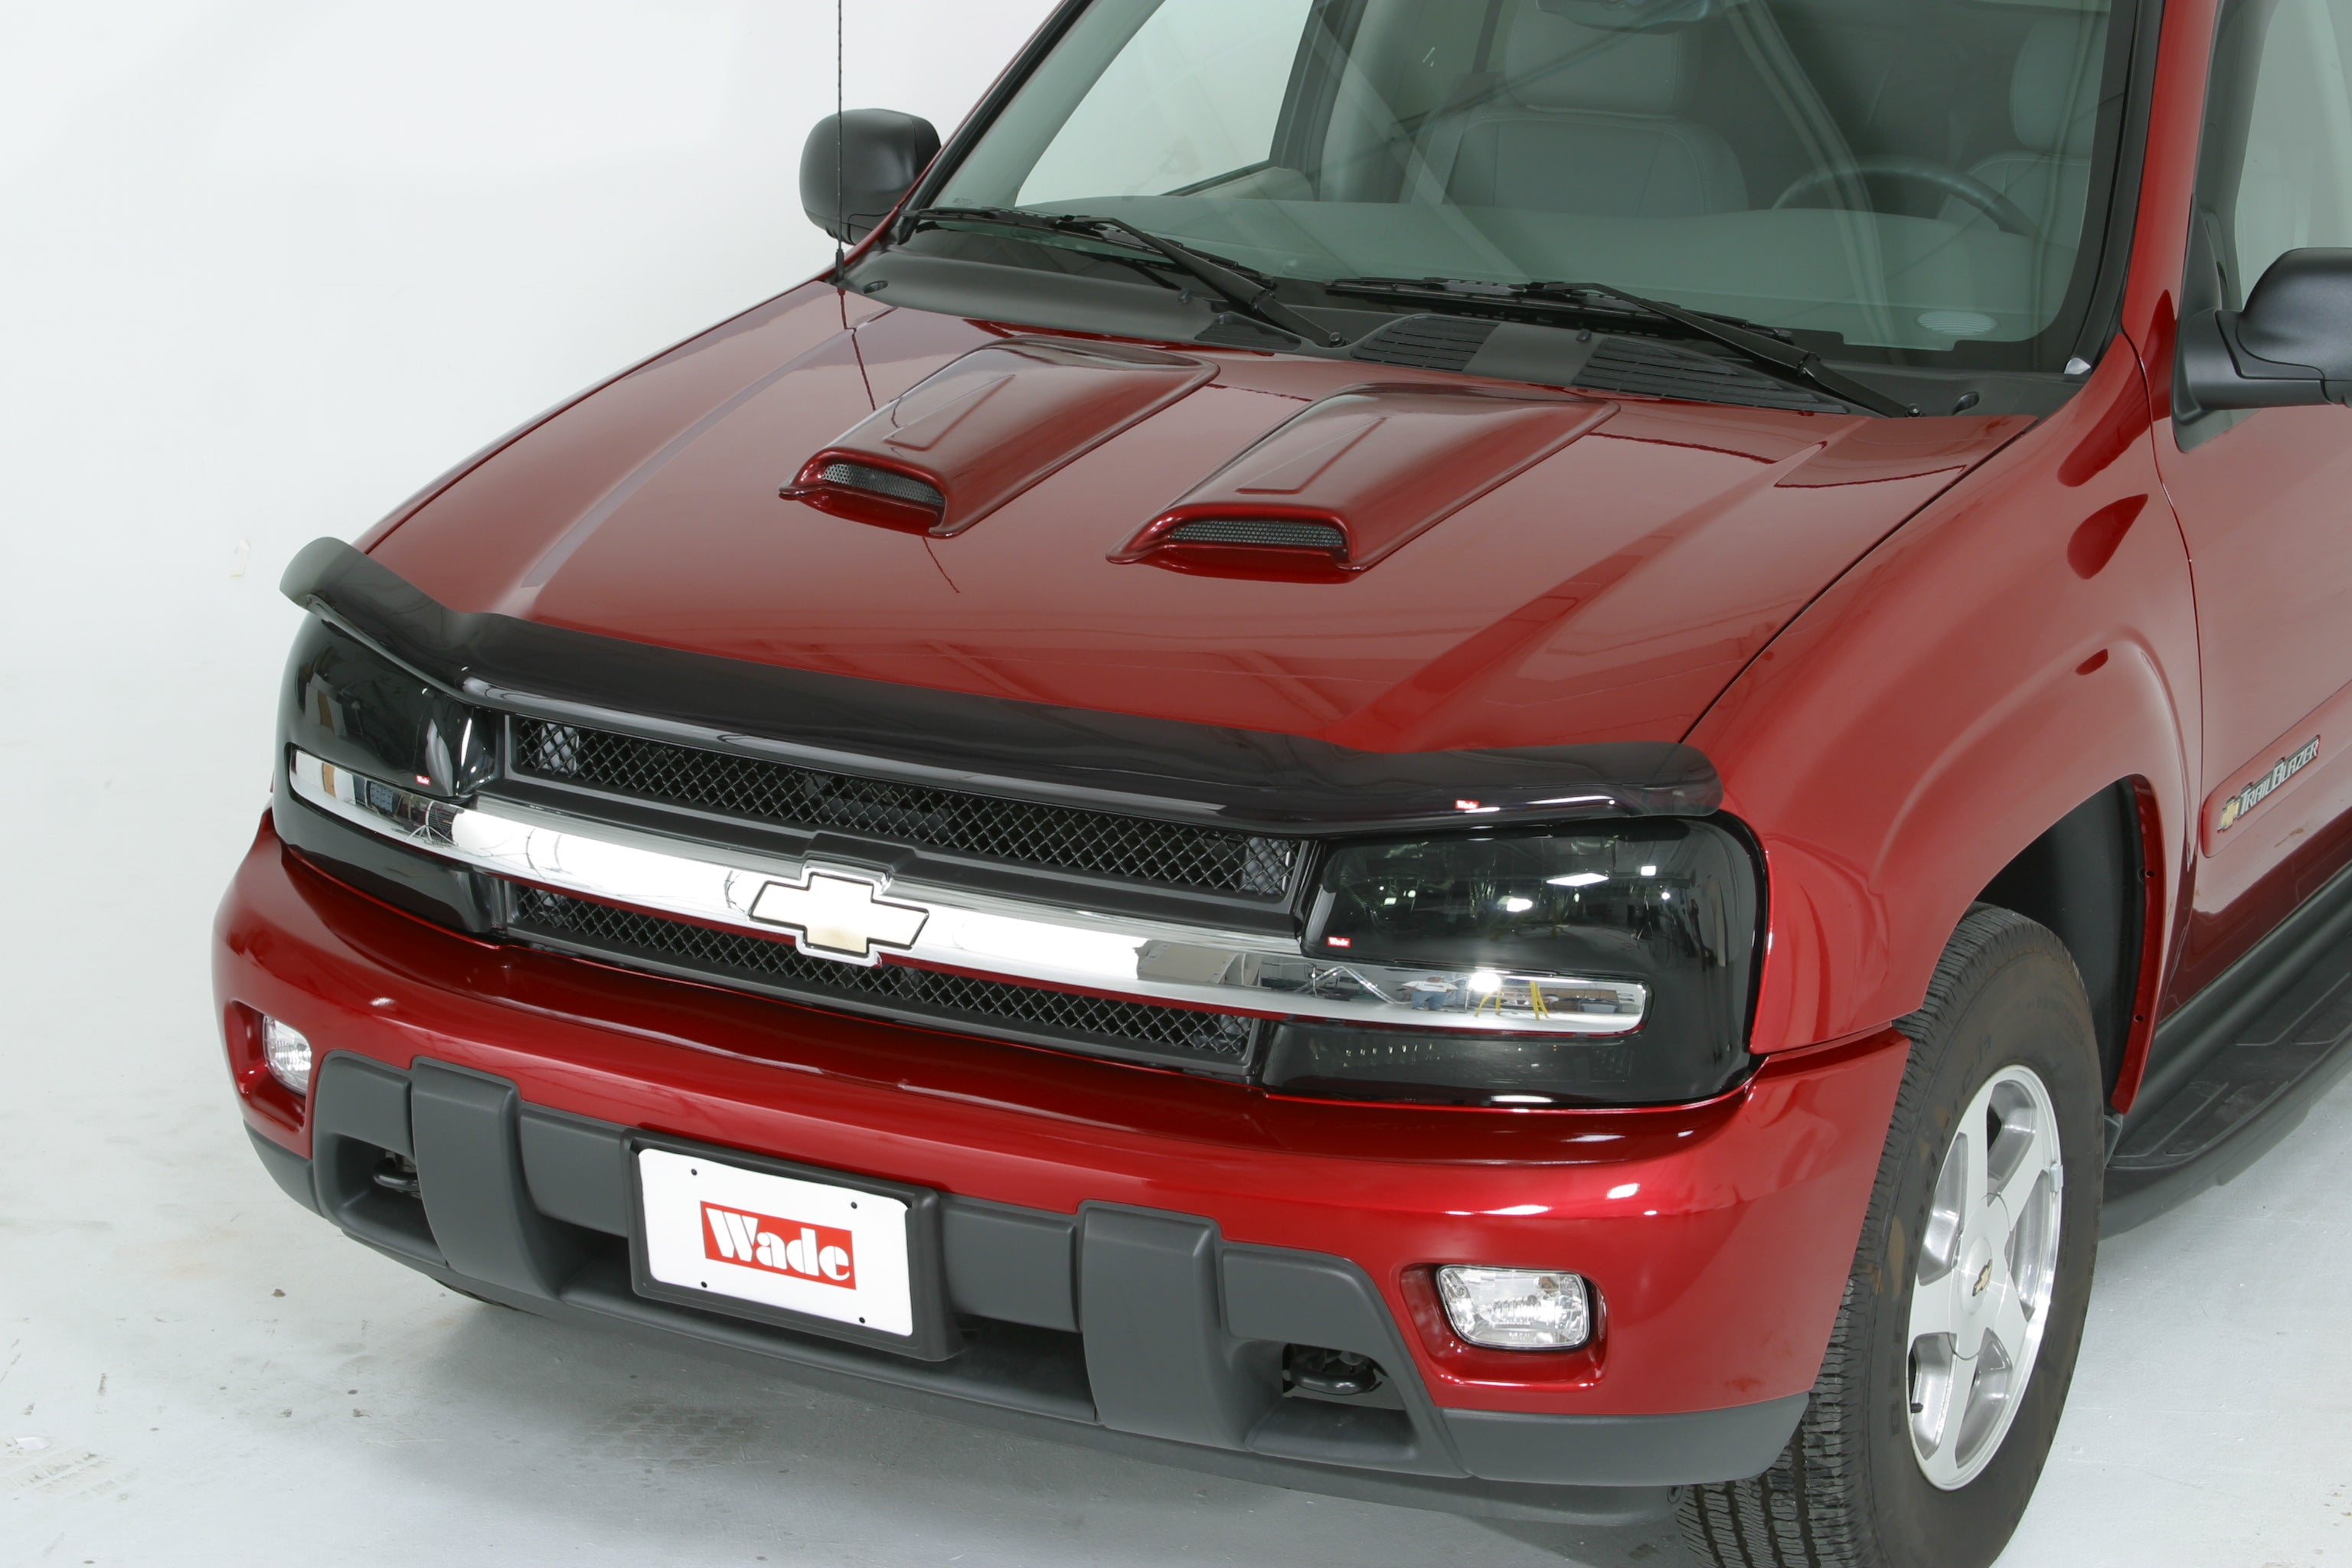 1991 Nissan Pickup 2WD (recessed light) Head Light Covers